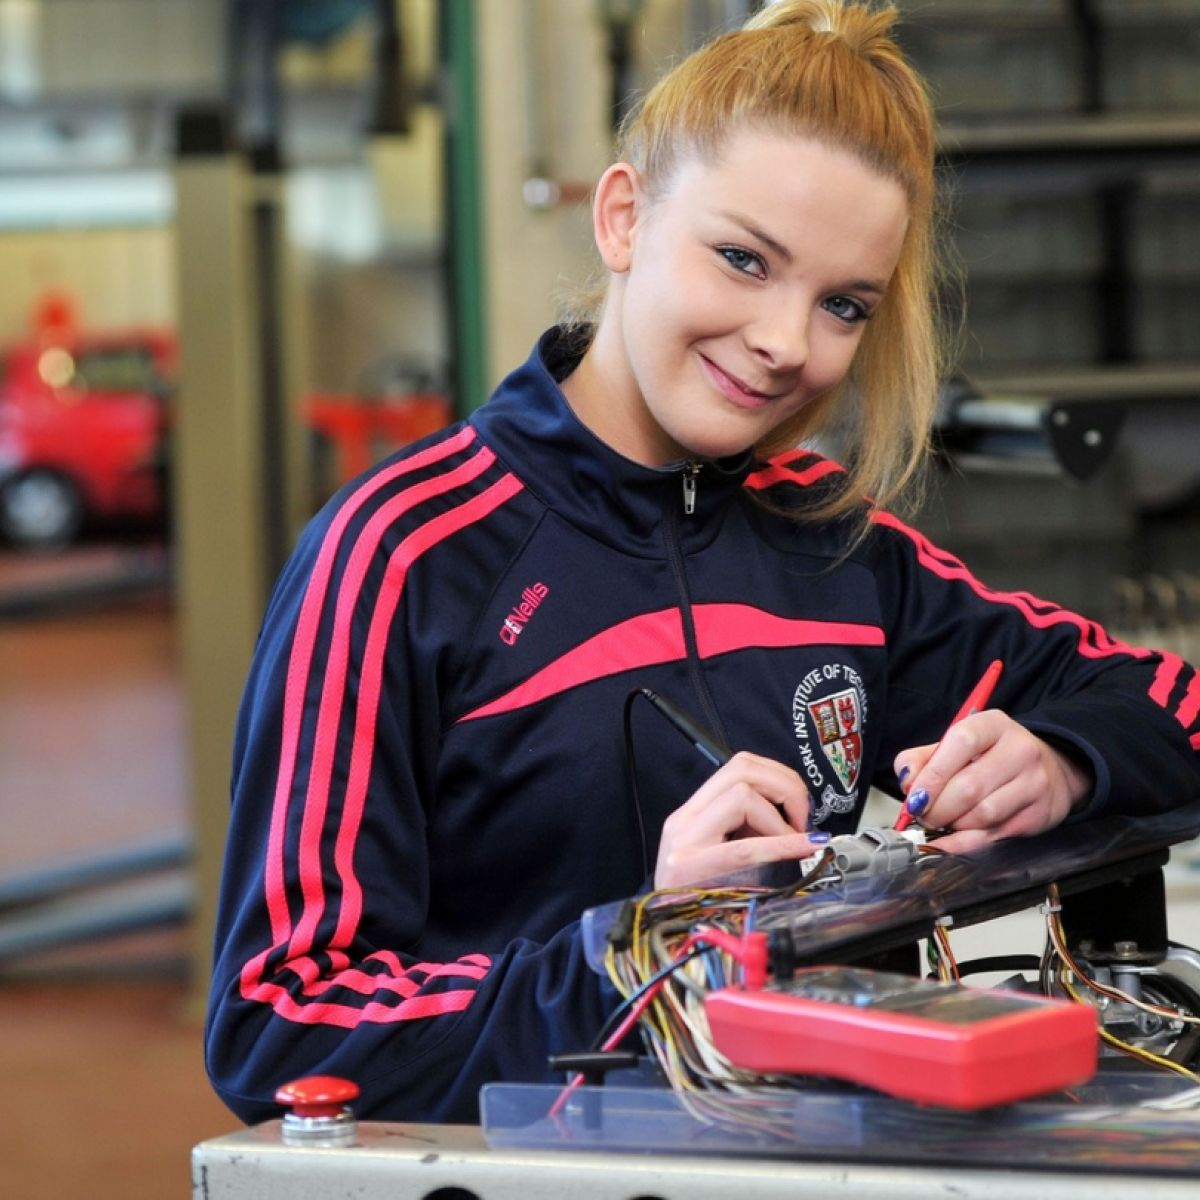 The plan to haul apprenticeships into the 21st century